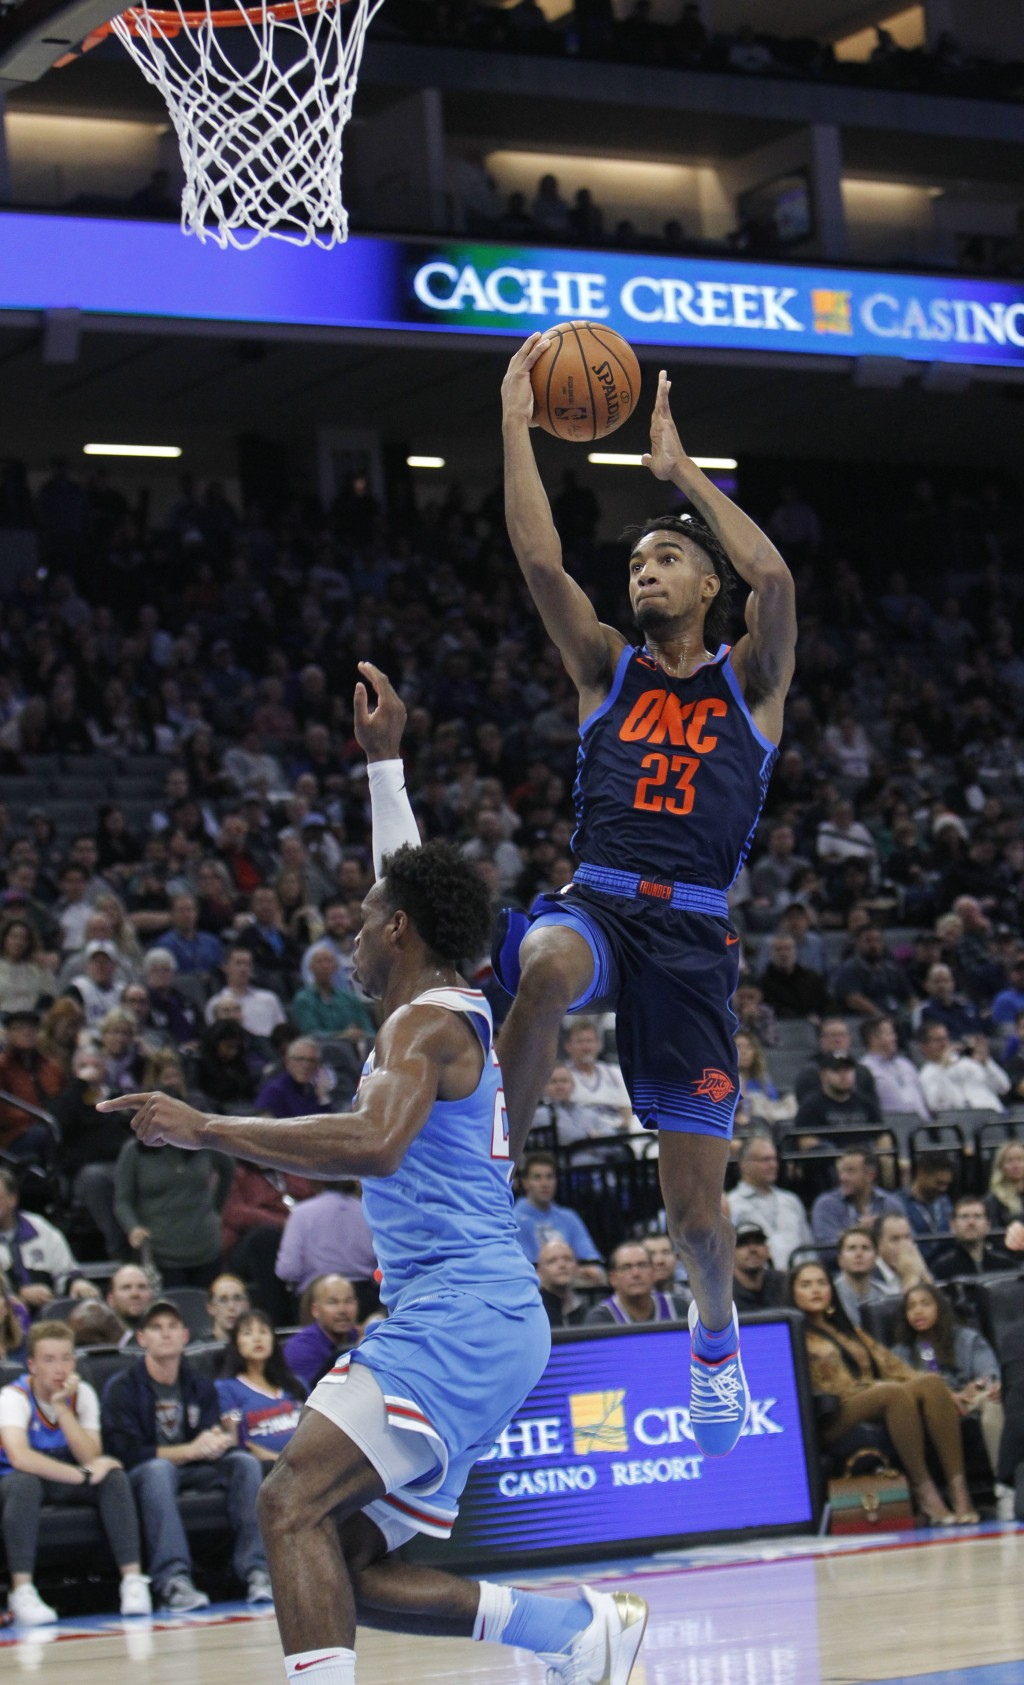 Oklahoma City Thunder guard Terrance Ferguson (23) drives to the basket against Sacramento Kings guard Buddy Hield (24) during the first half of an NB...